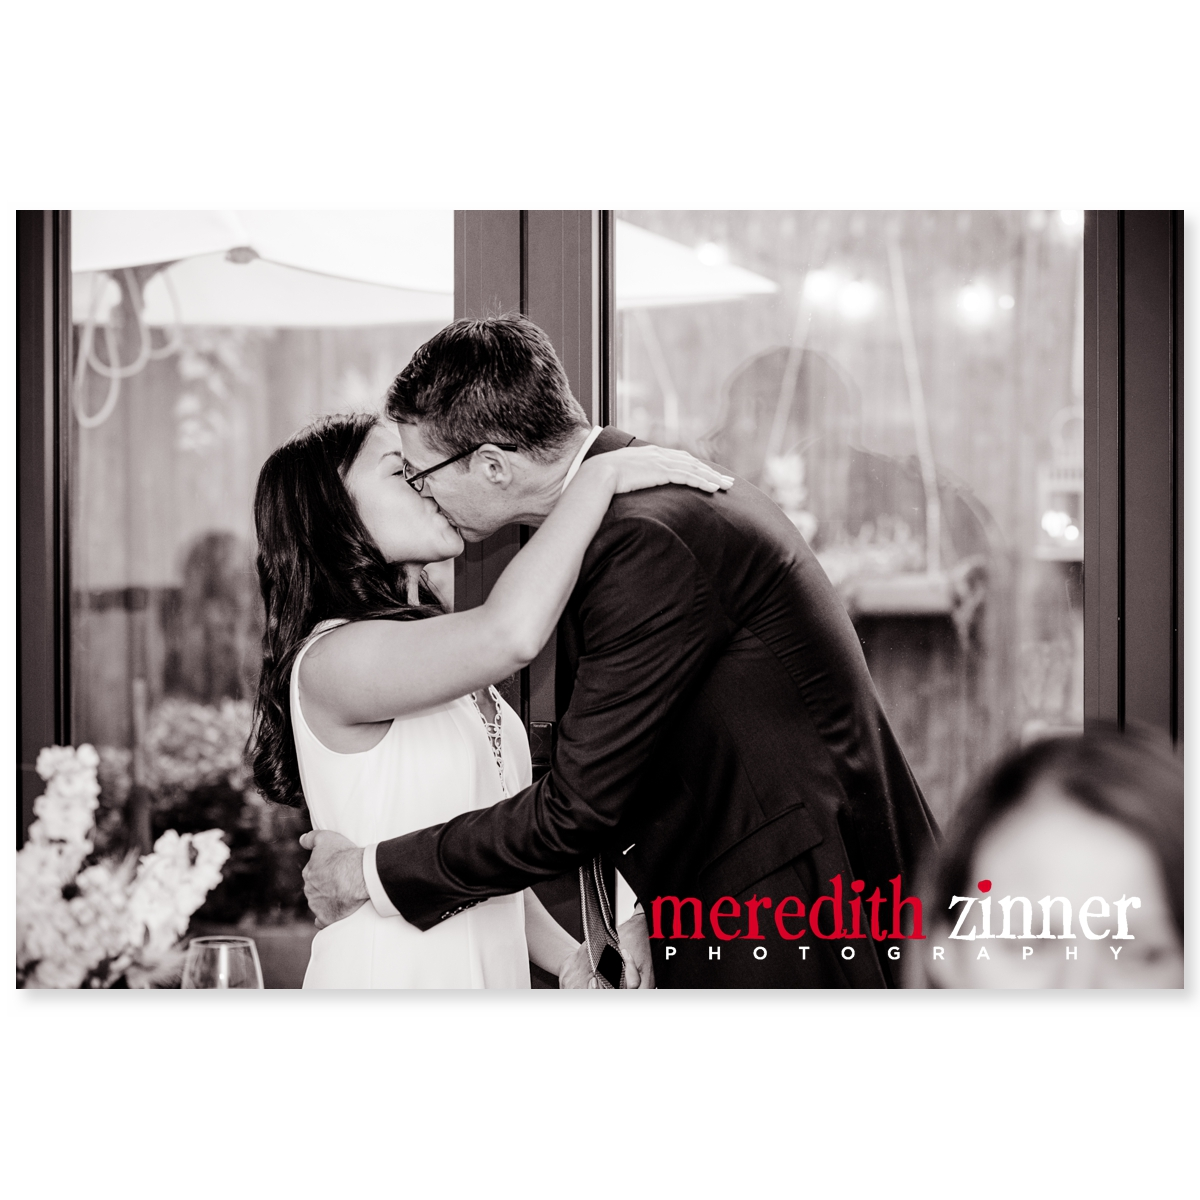 Meredith_Zinner_Photography_StilesCelebration_0195